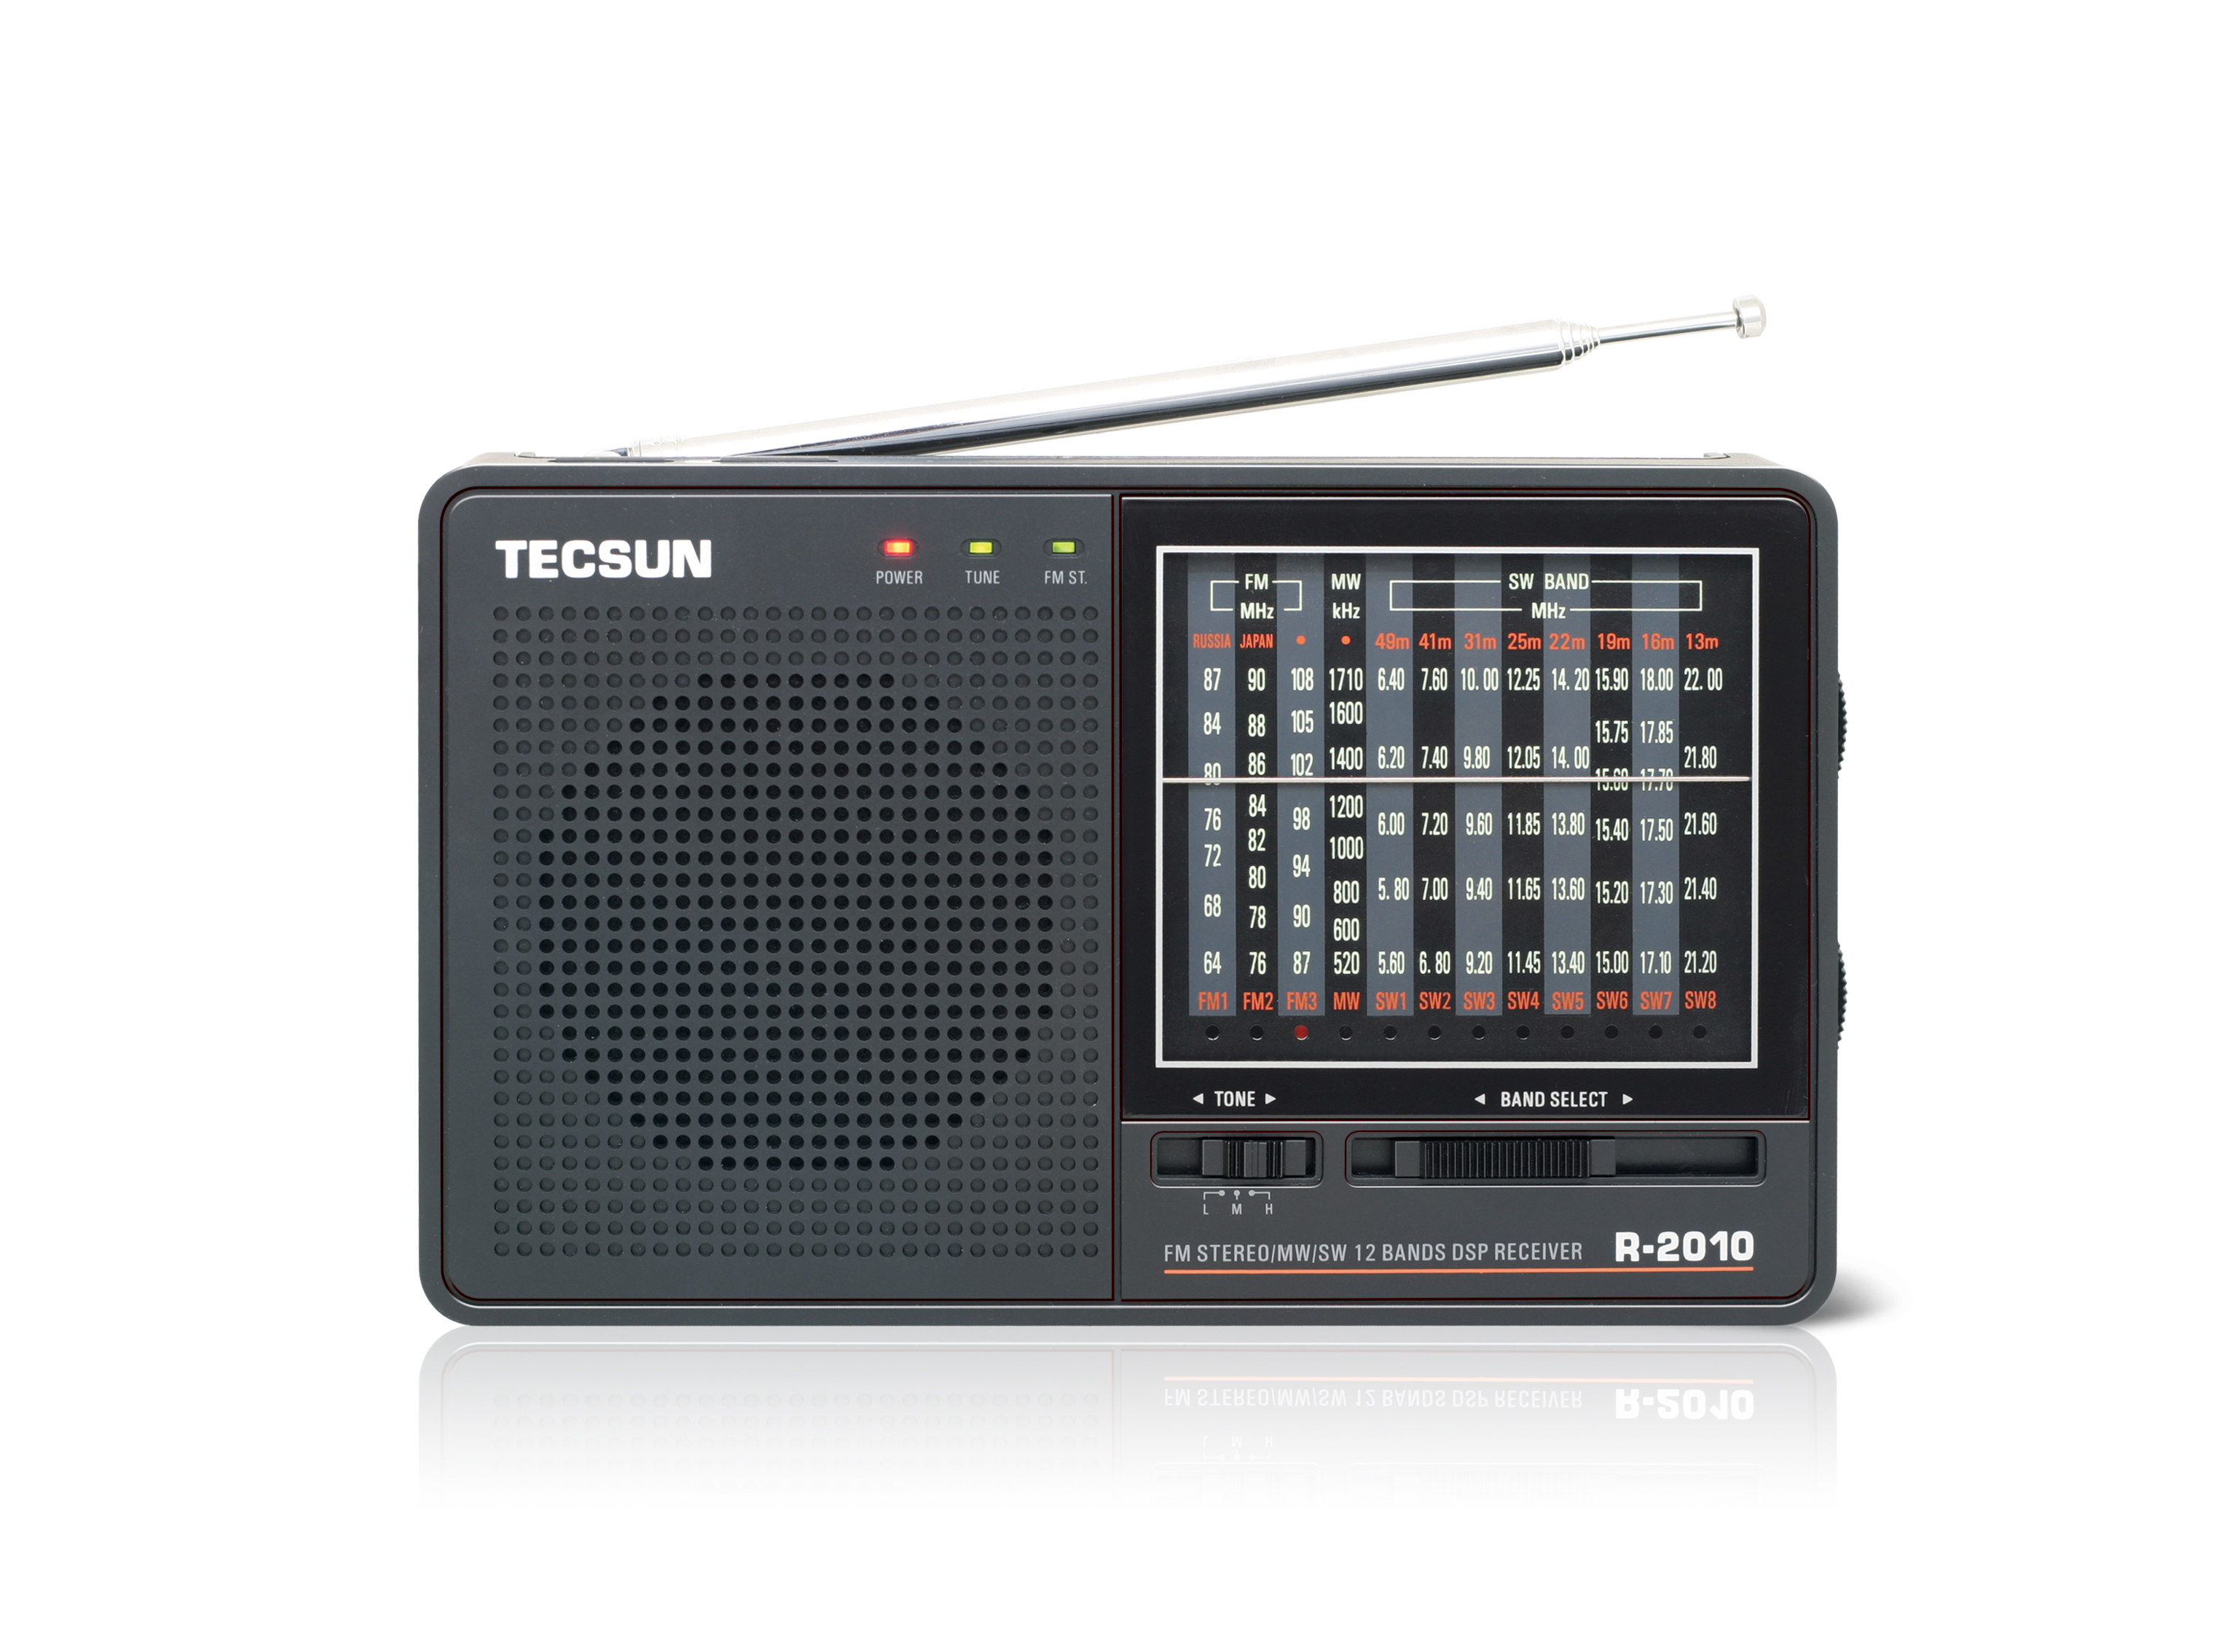 tecsun r 2010 shortwave radio index. Black Bedroom Furniture Sets. Home Design Ideas